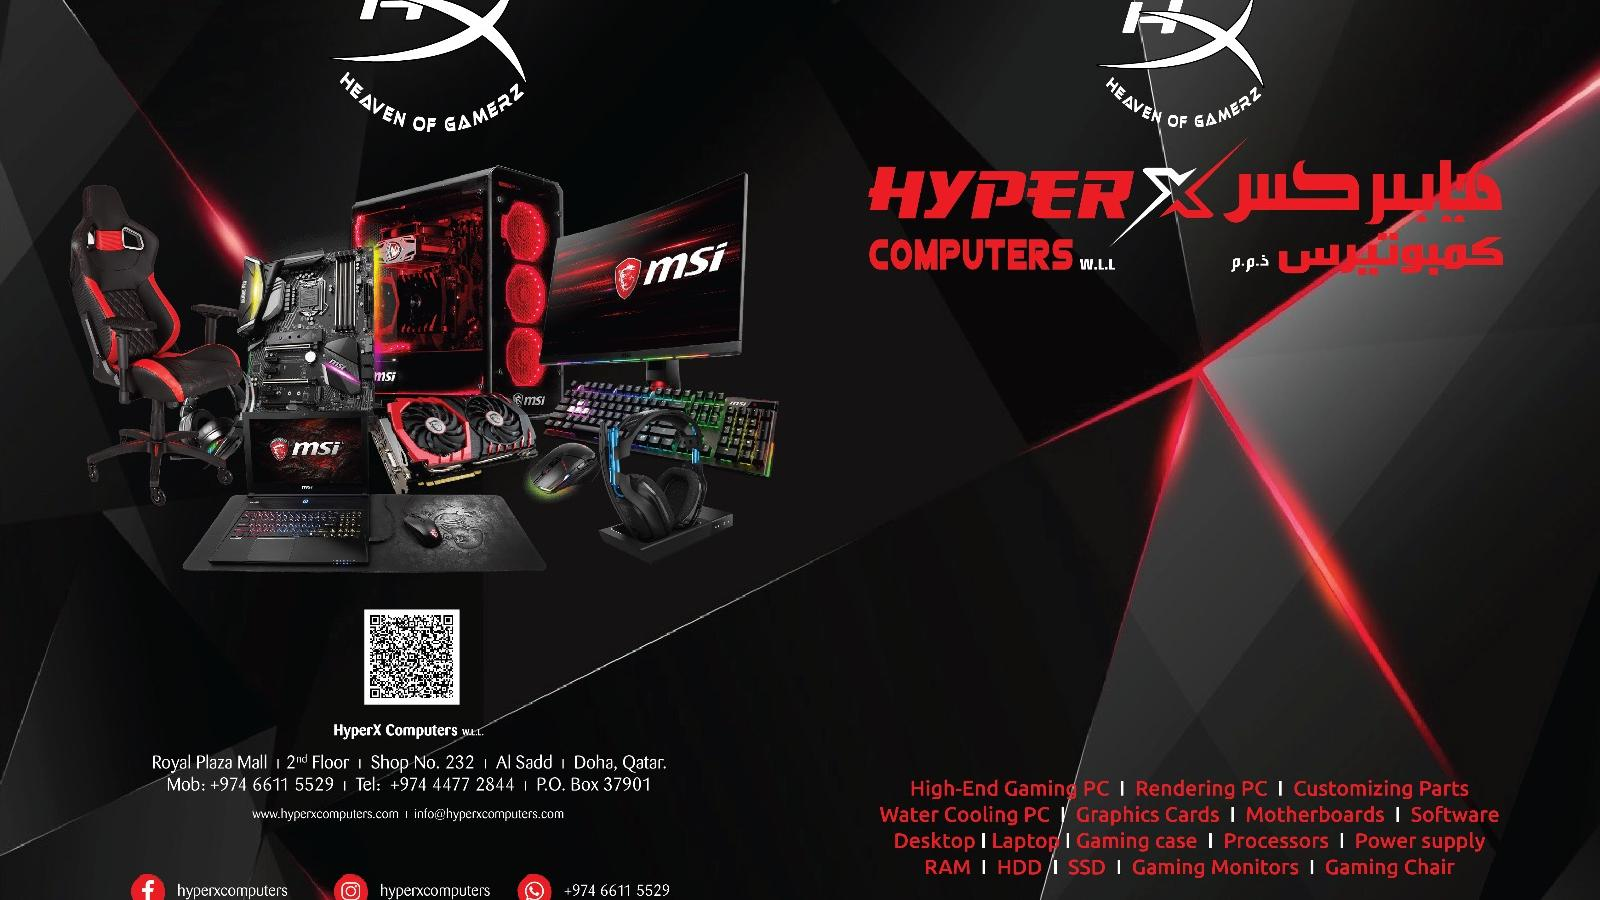 HyperX Computers offers the ultimate gaming solutions